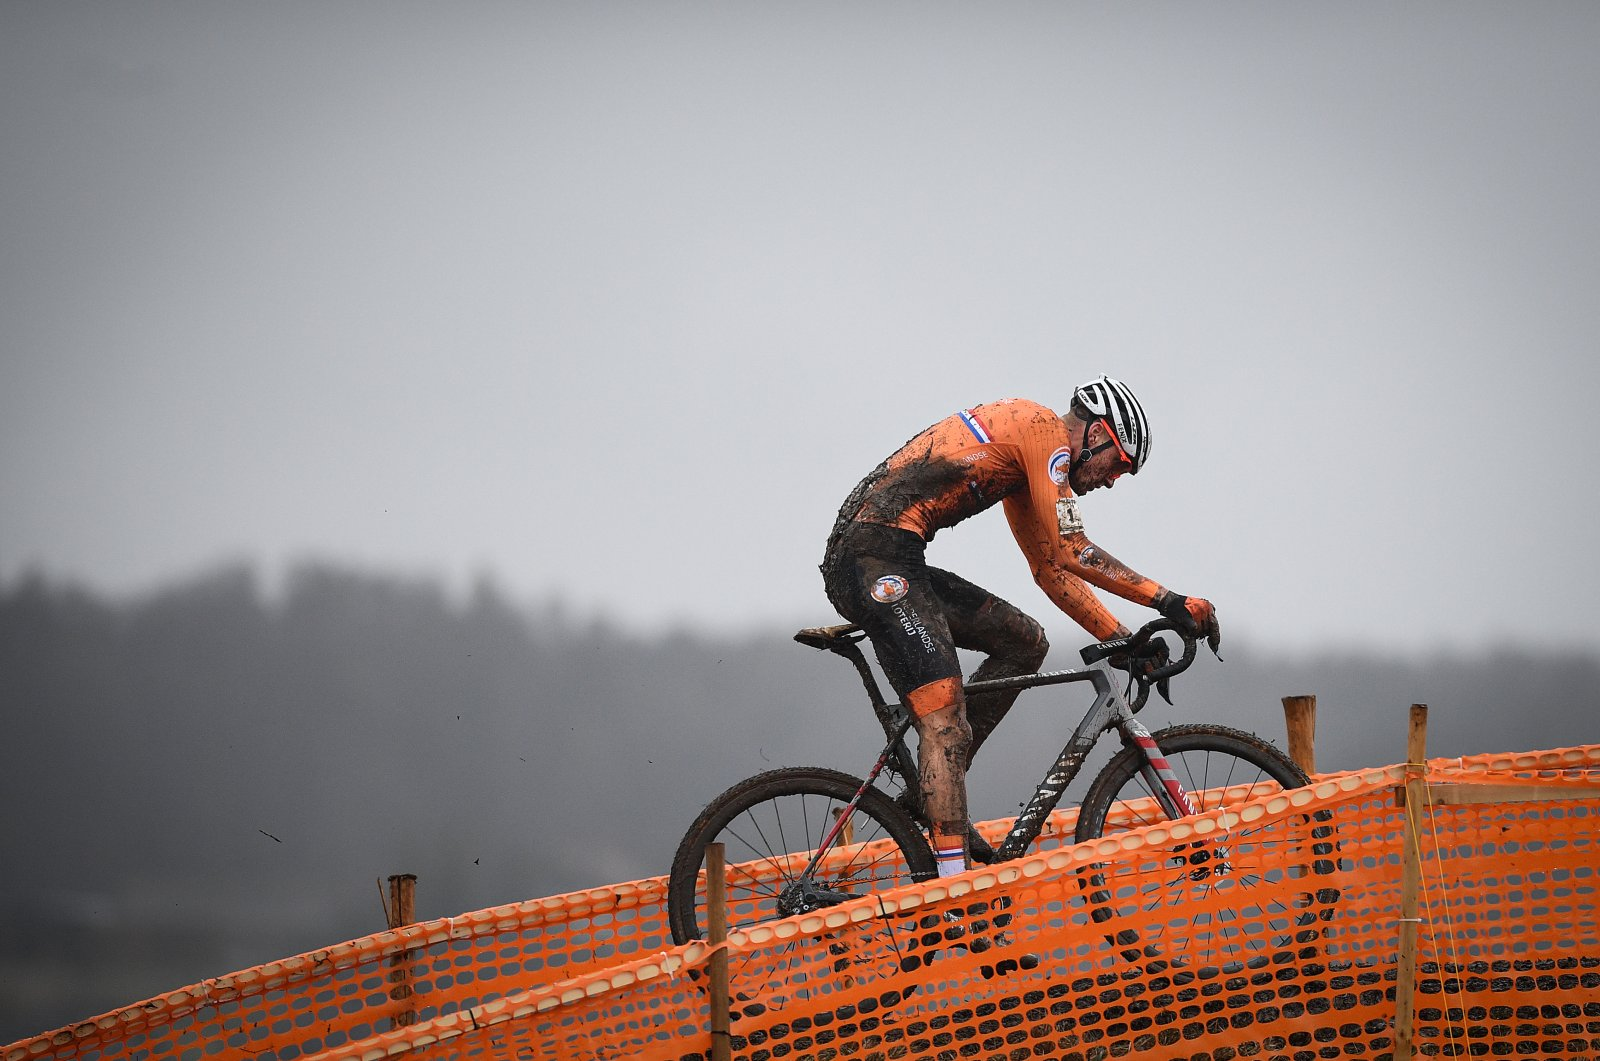 Mathieu Van Der Poel in action during the men's elite race at the World Championships cyclocross cycling in Dubendorf, Switzerland, Feb. 2, 2020. (Reuters Photo)